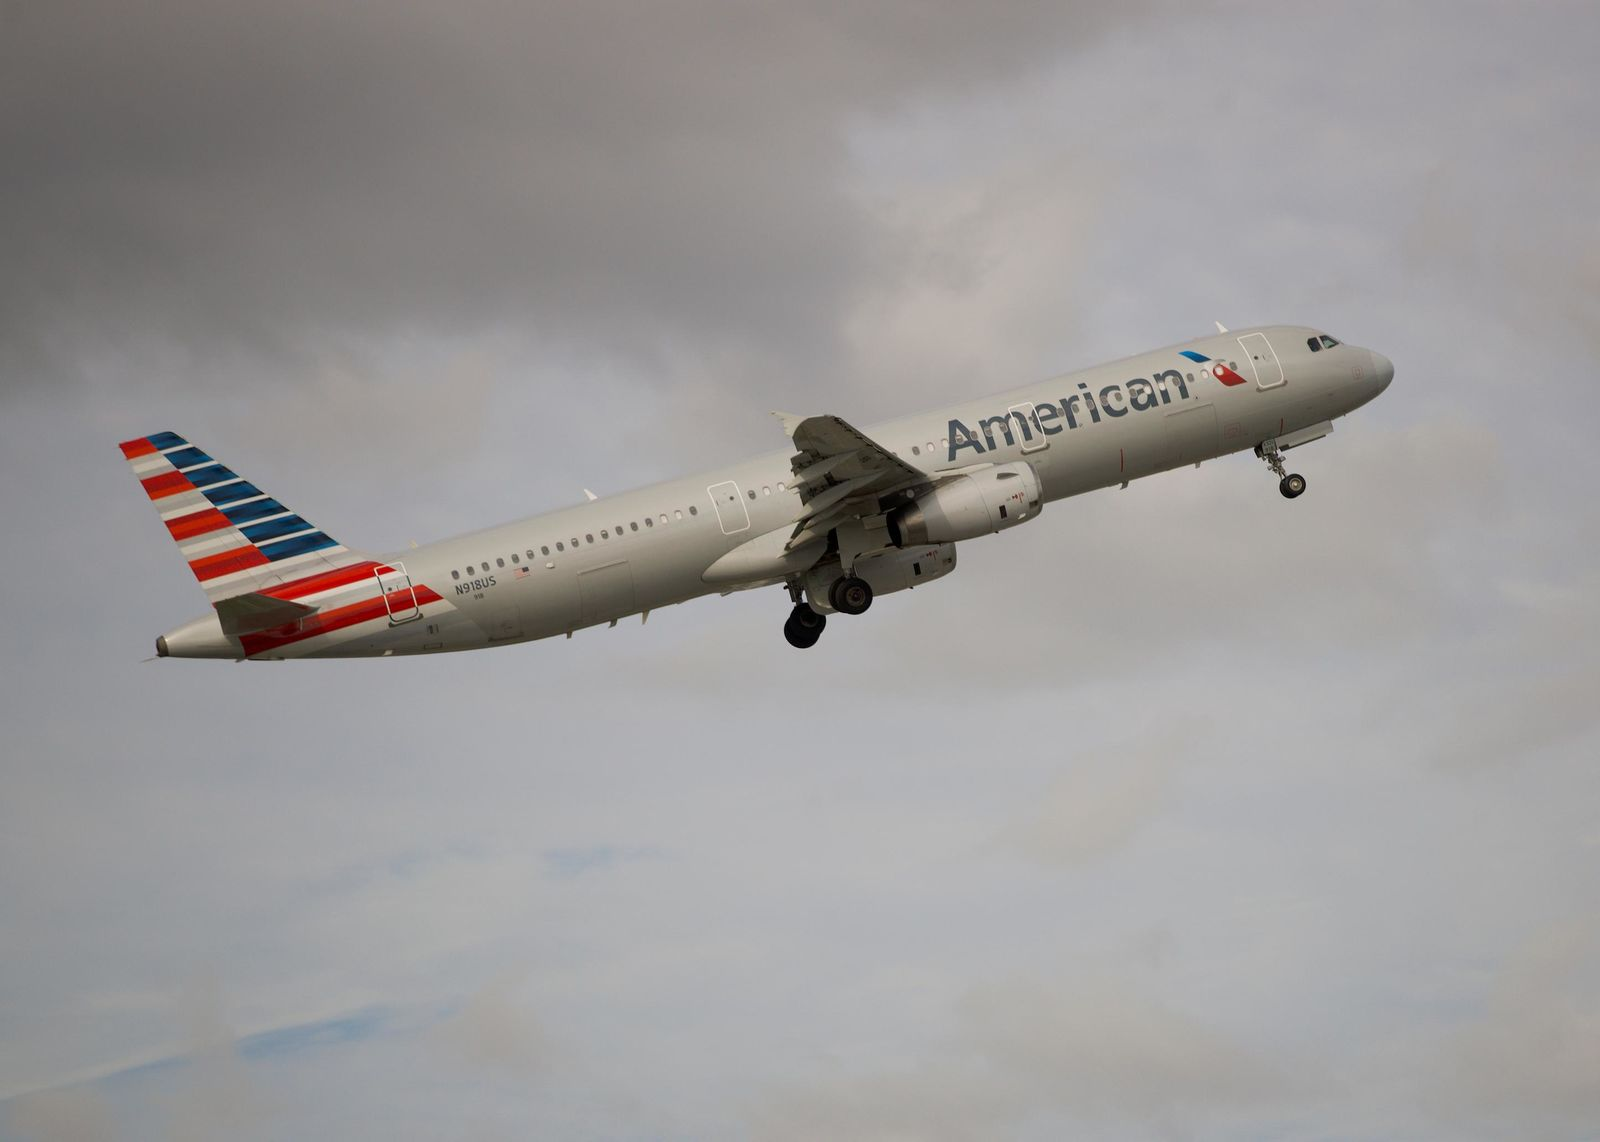 In this Thursday, Nov. 29, 2018, photo, an American Airlines Airbus A321 takes off from Fort Lauderdale–Hollywood International Airport in Fort Lauderdale, Fla. On Friday, June 14, 2019, a federal judge ordered unions that represent American Airlines mechanics not to interfere in the airline's operations. (AP Photo/Wilfredo Lee)